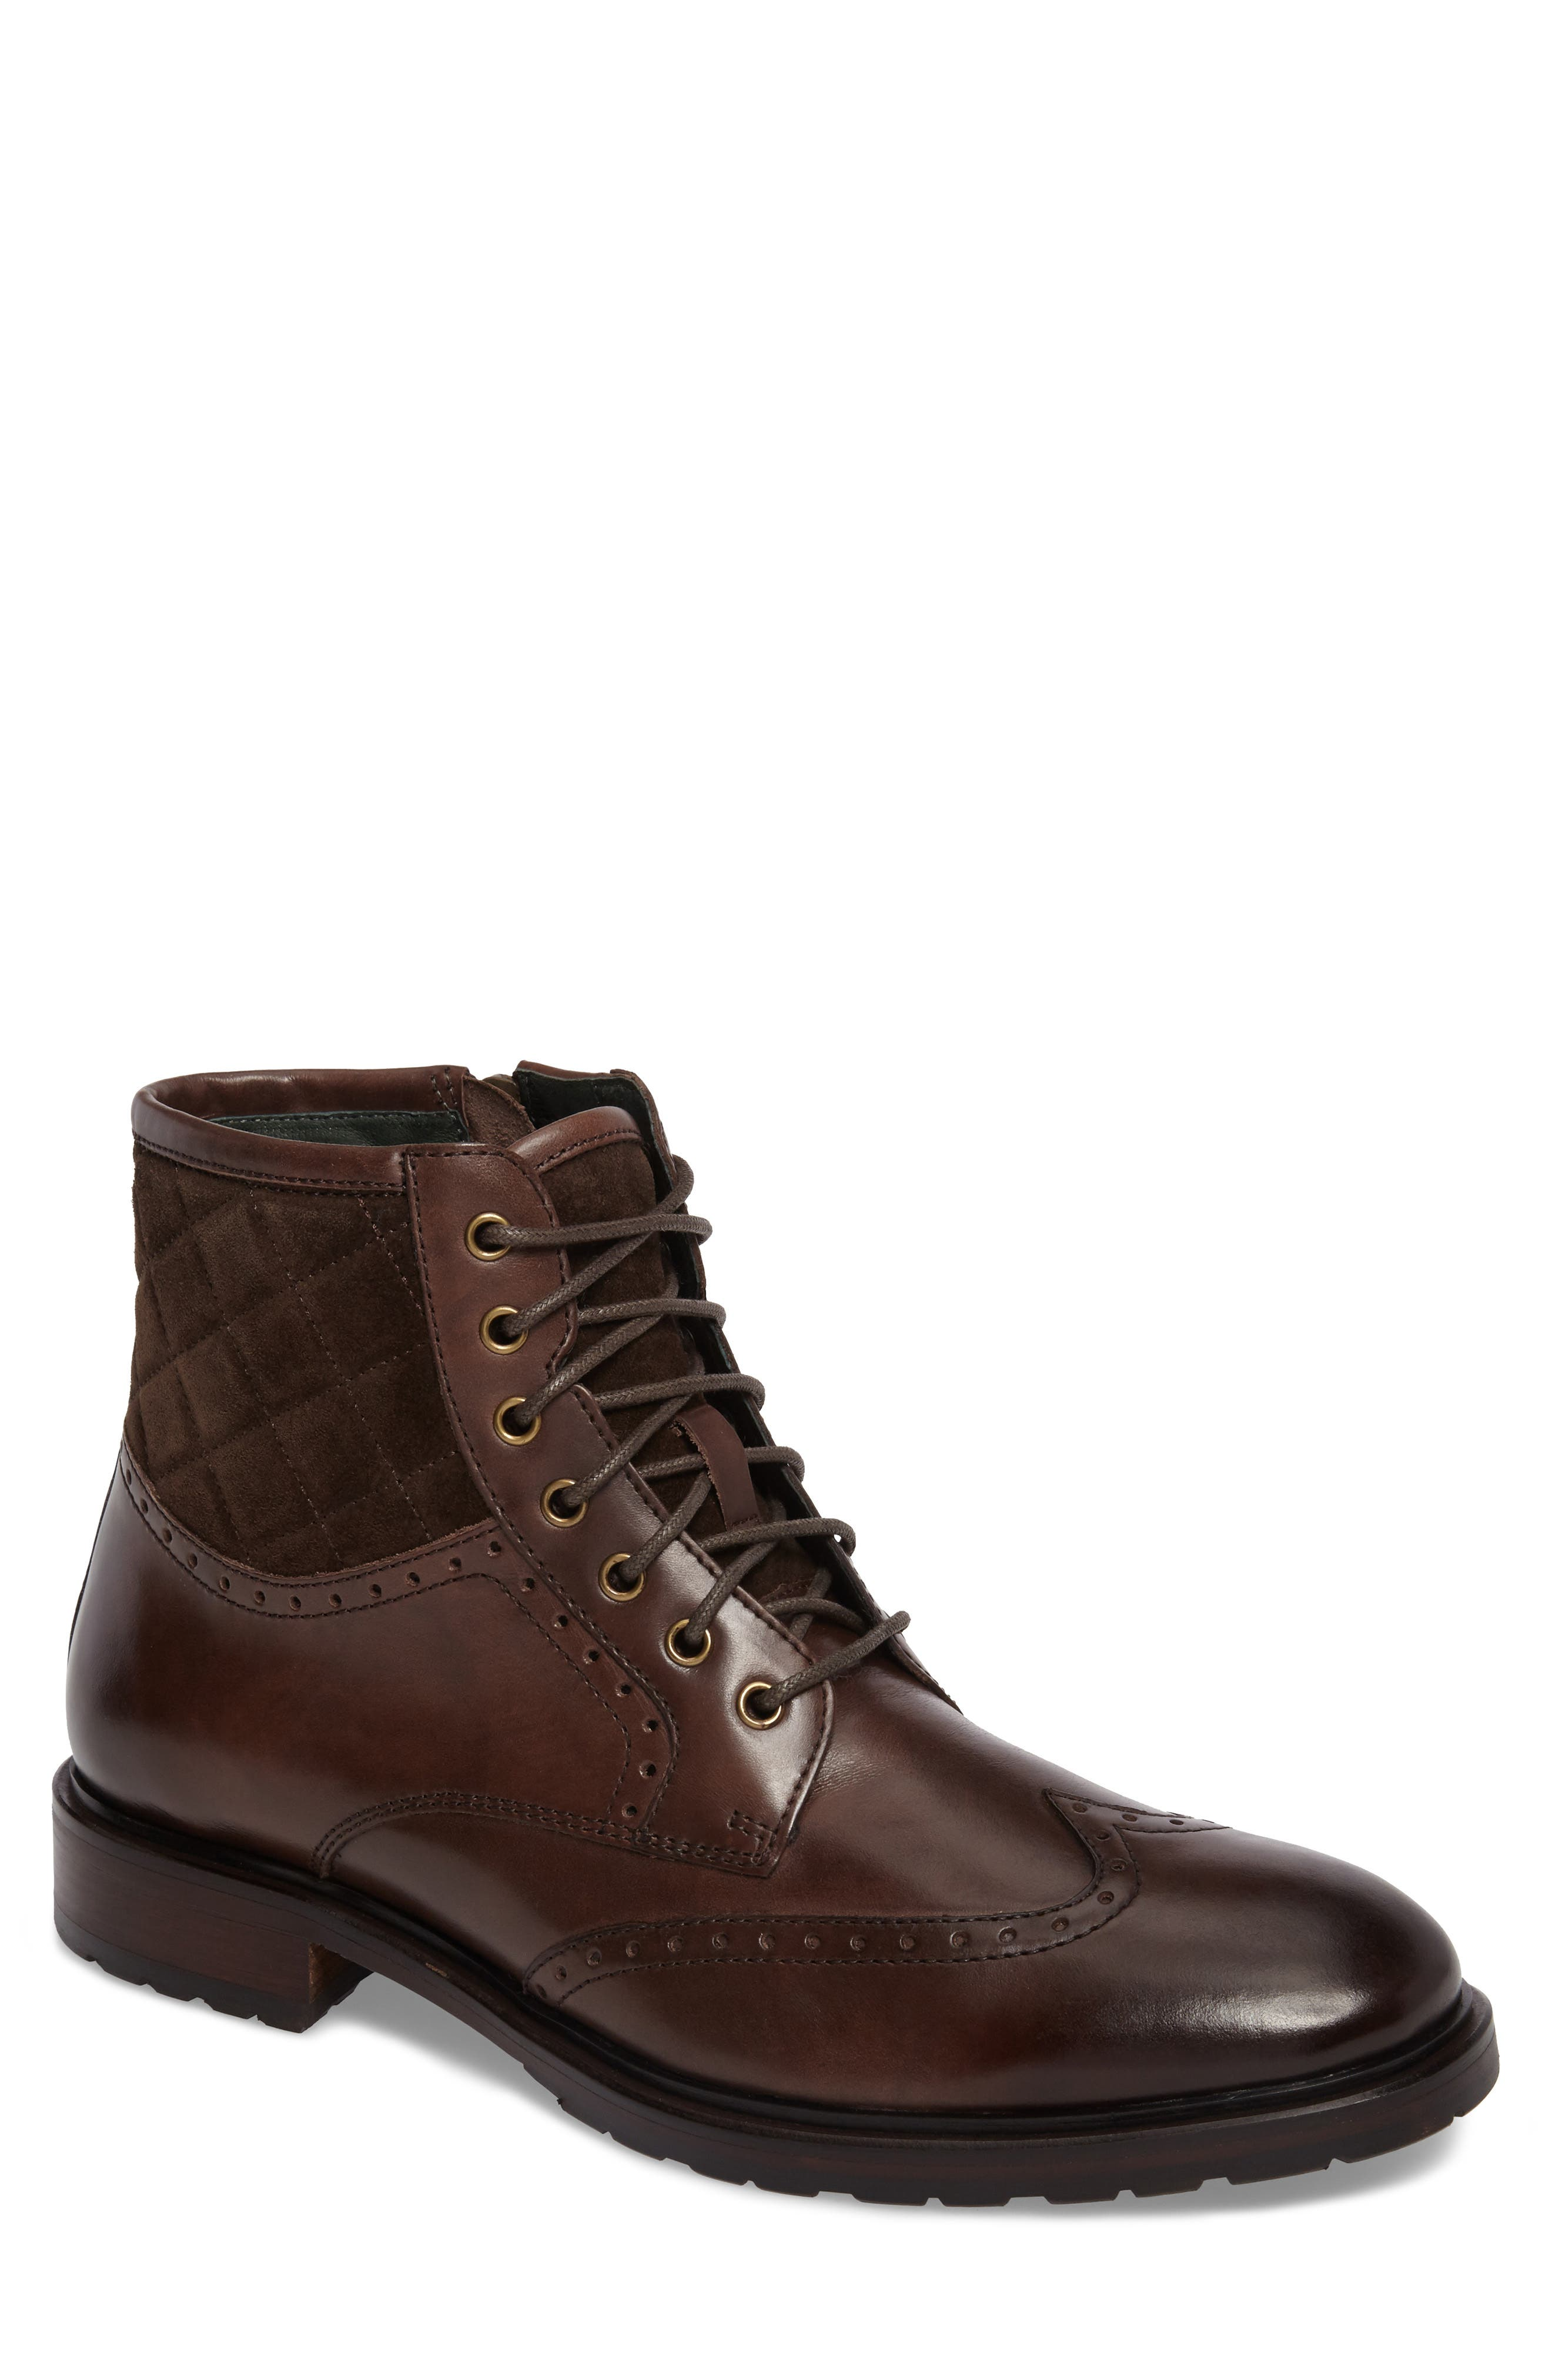 Myles Wingtip Boot,                         Main,                         color, 206